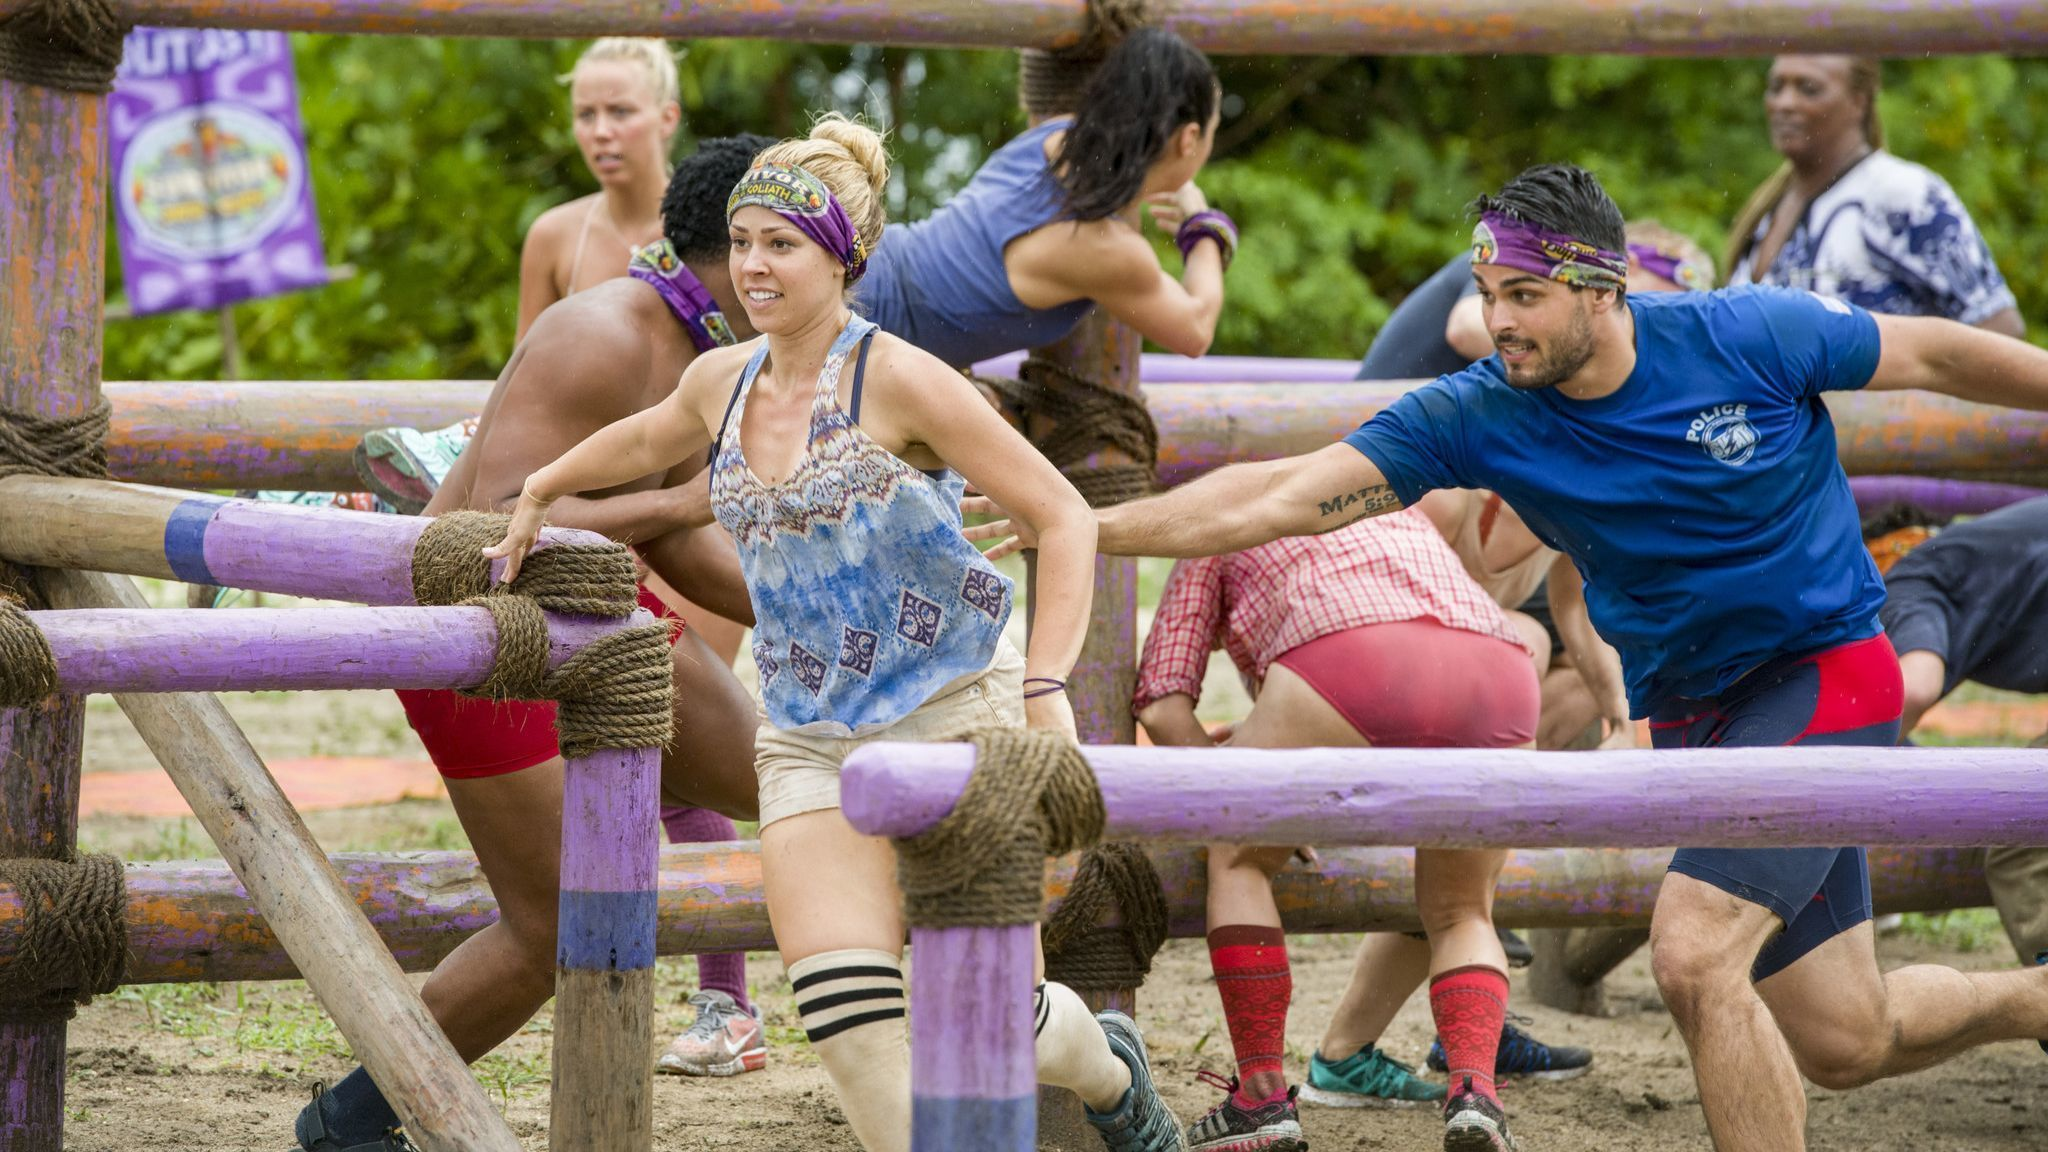 Kara Kay, foreground and left, competes in a 'Survivor: David vs. Goliath' challenge.